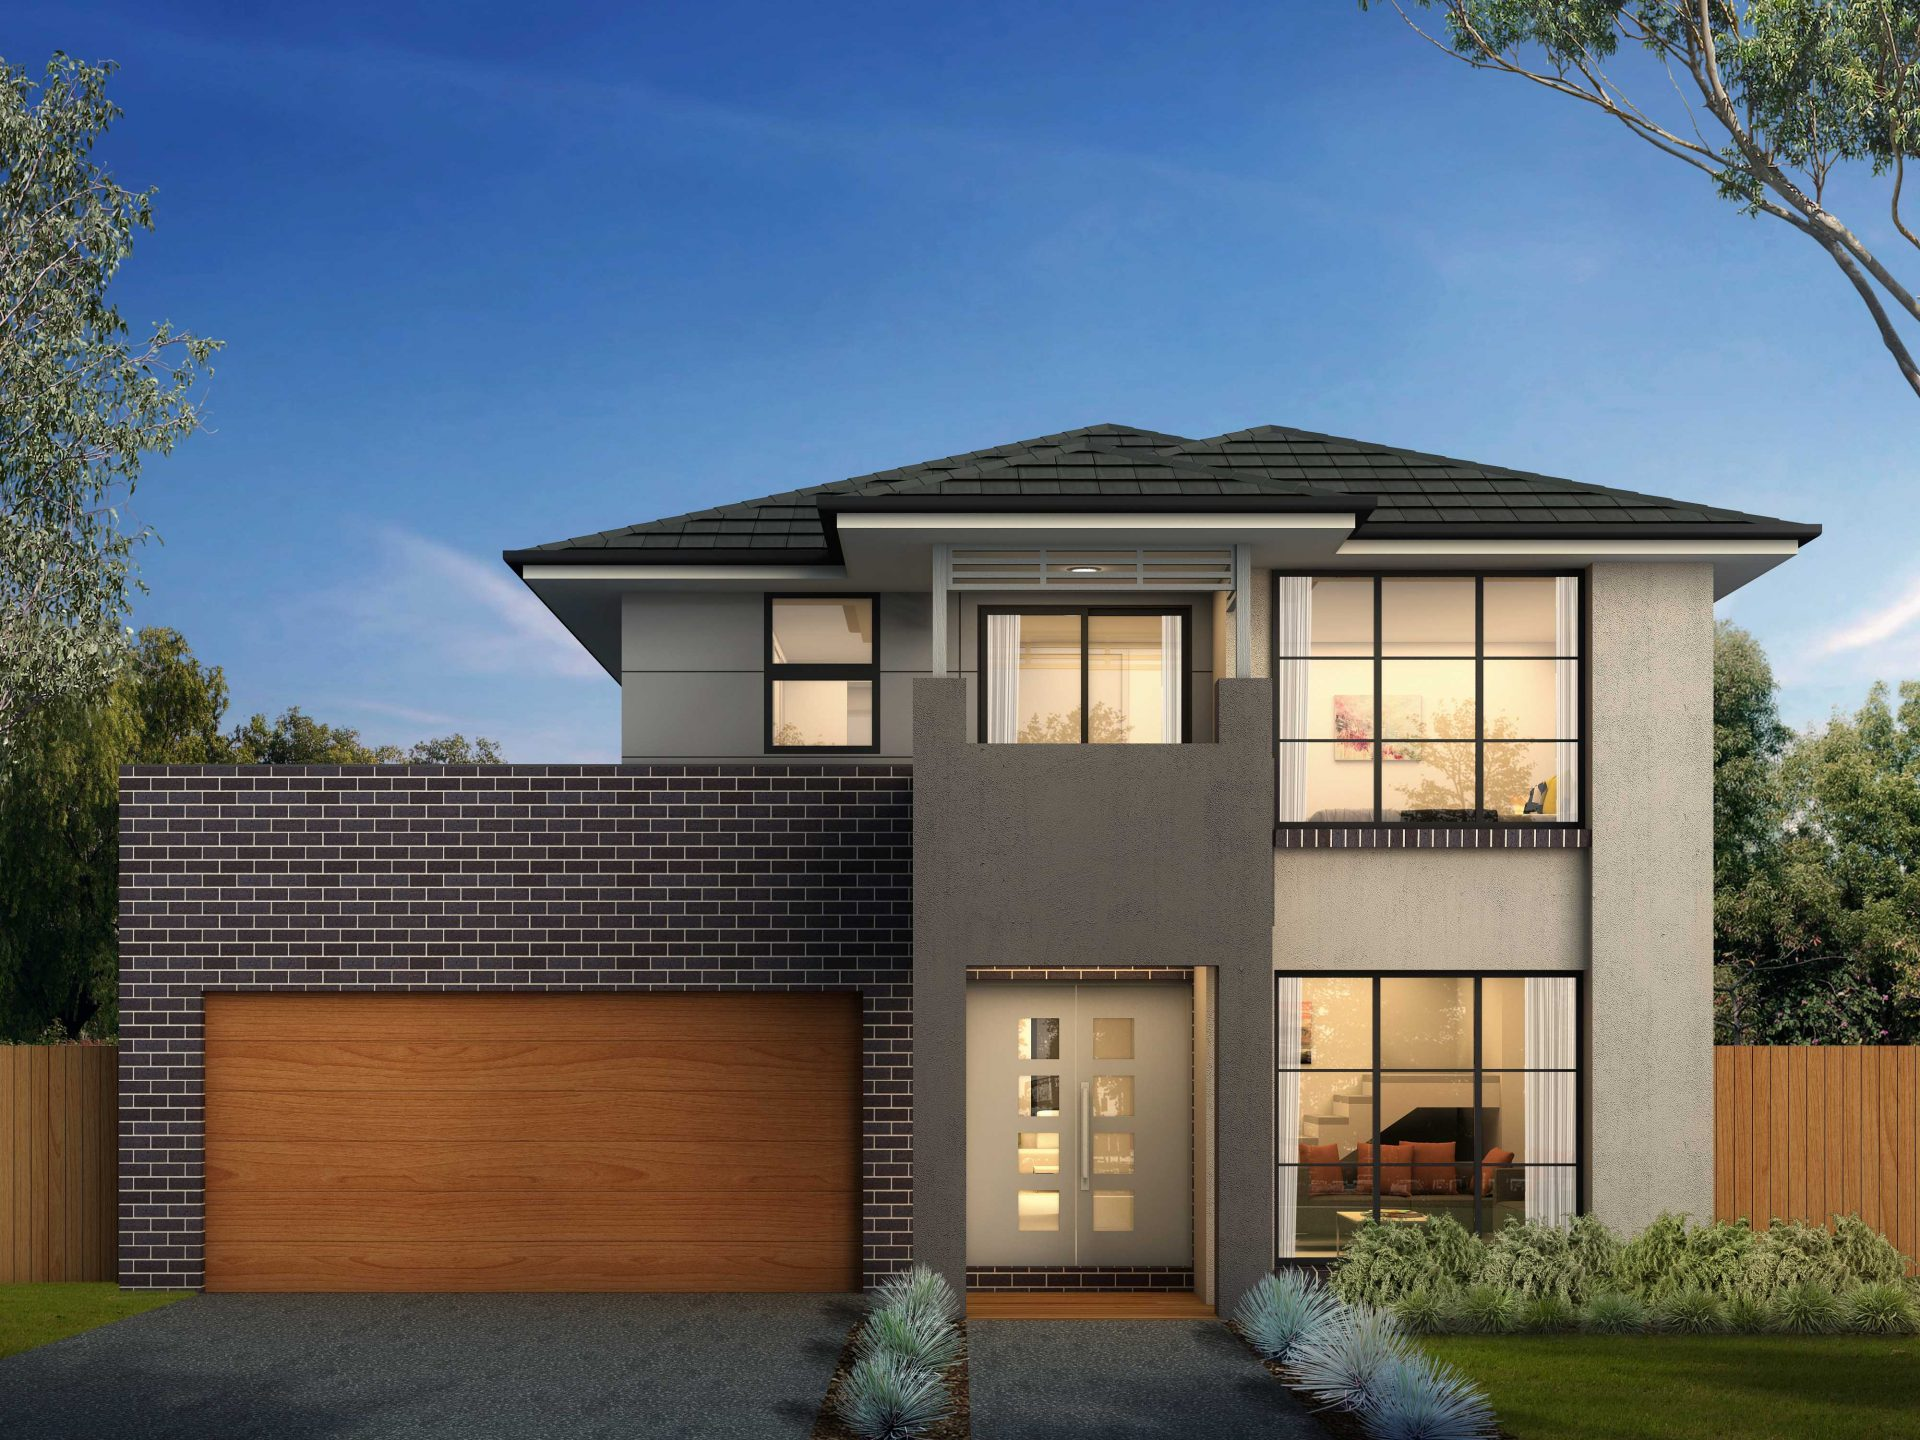 Home Ceres 32, Modern Façade With Balcony New Home Design Sydney